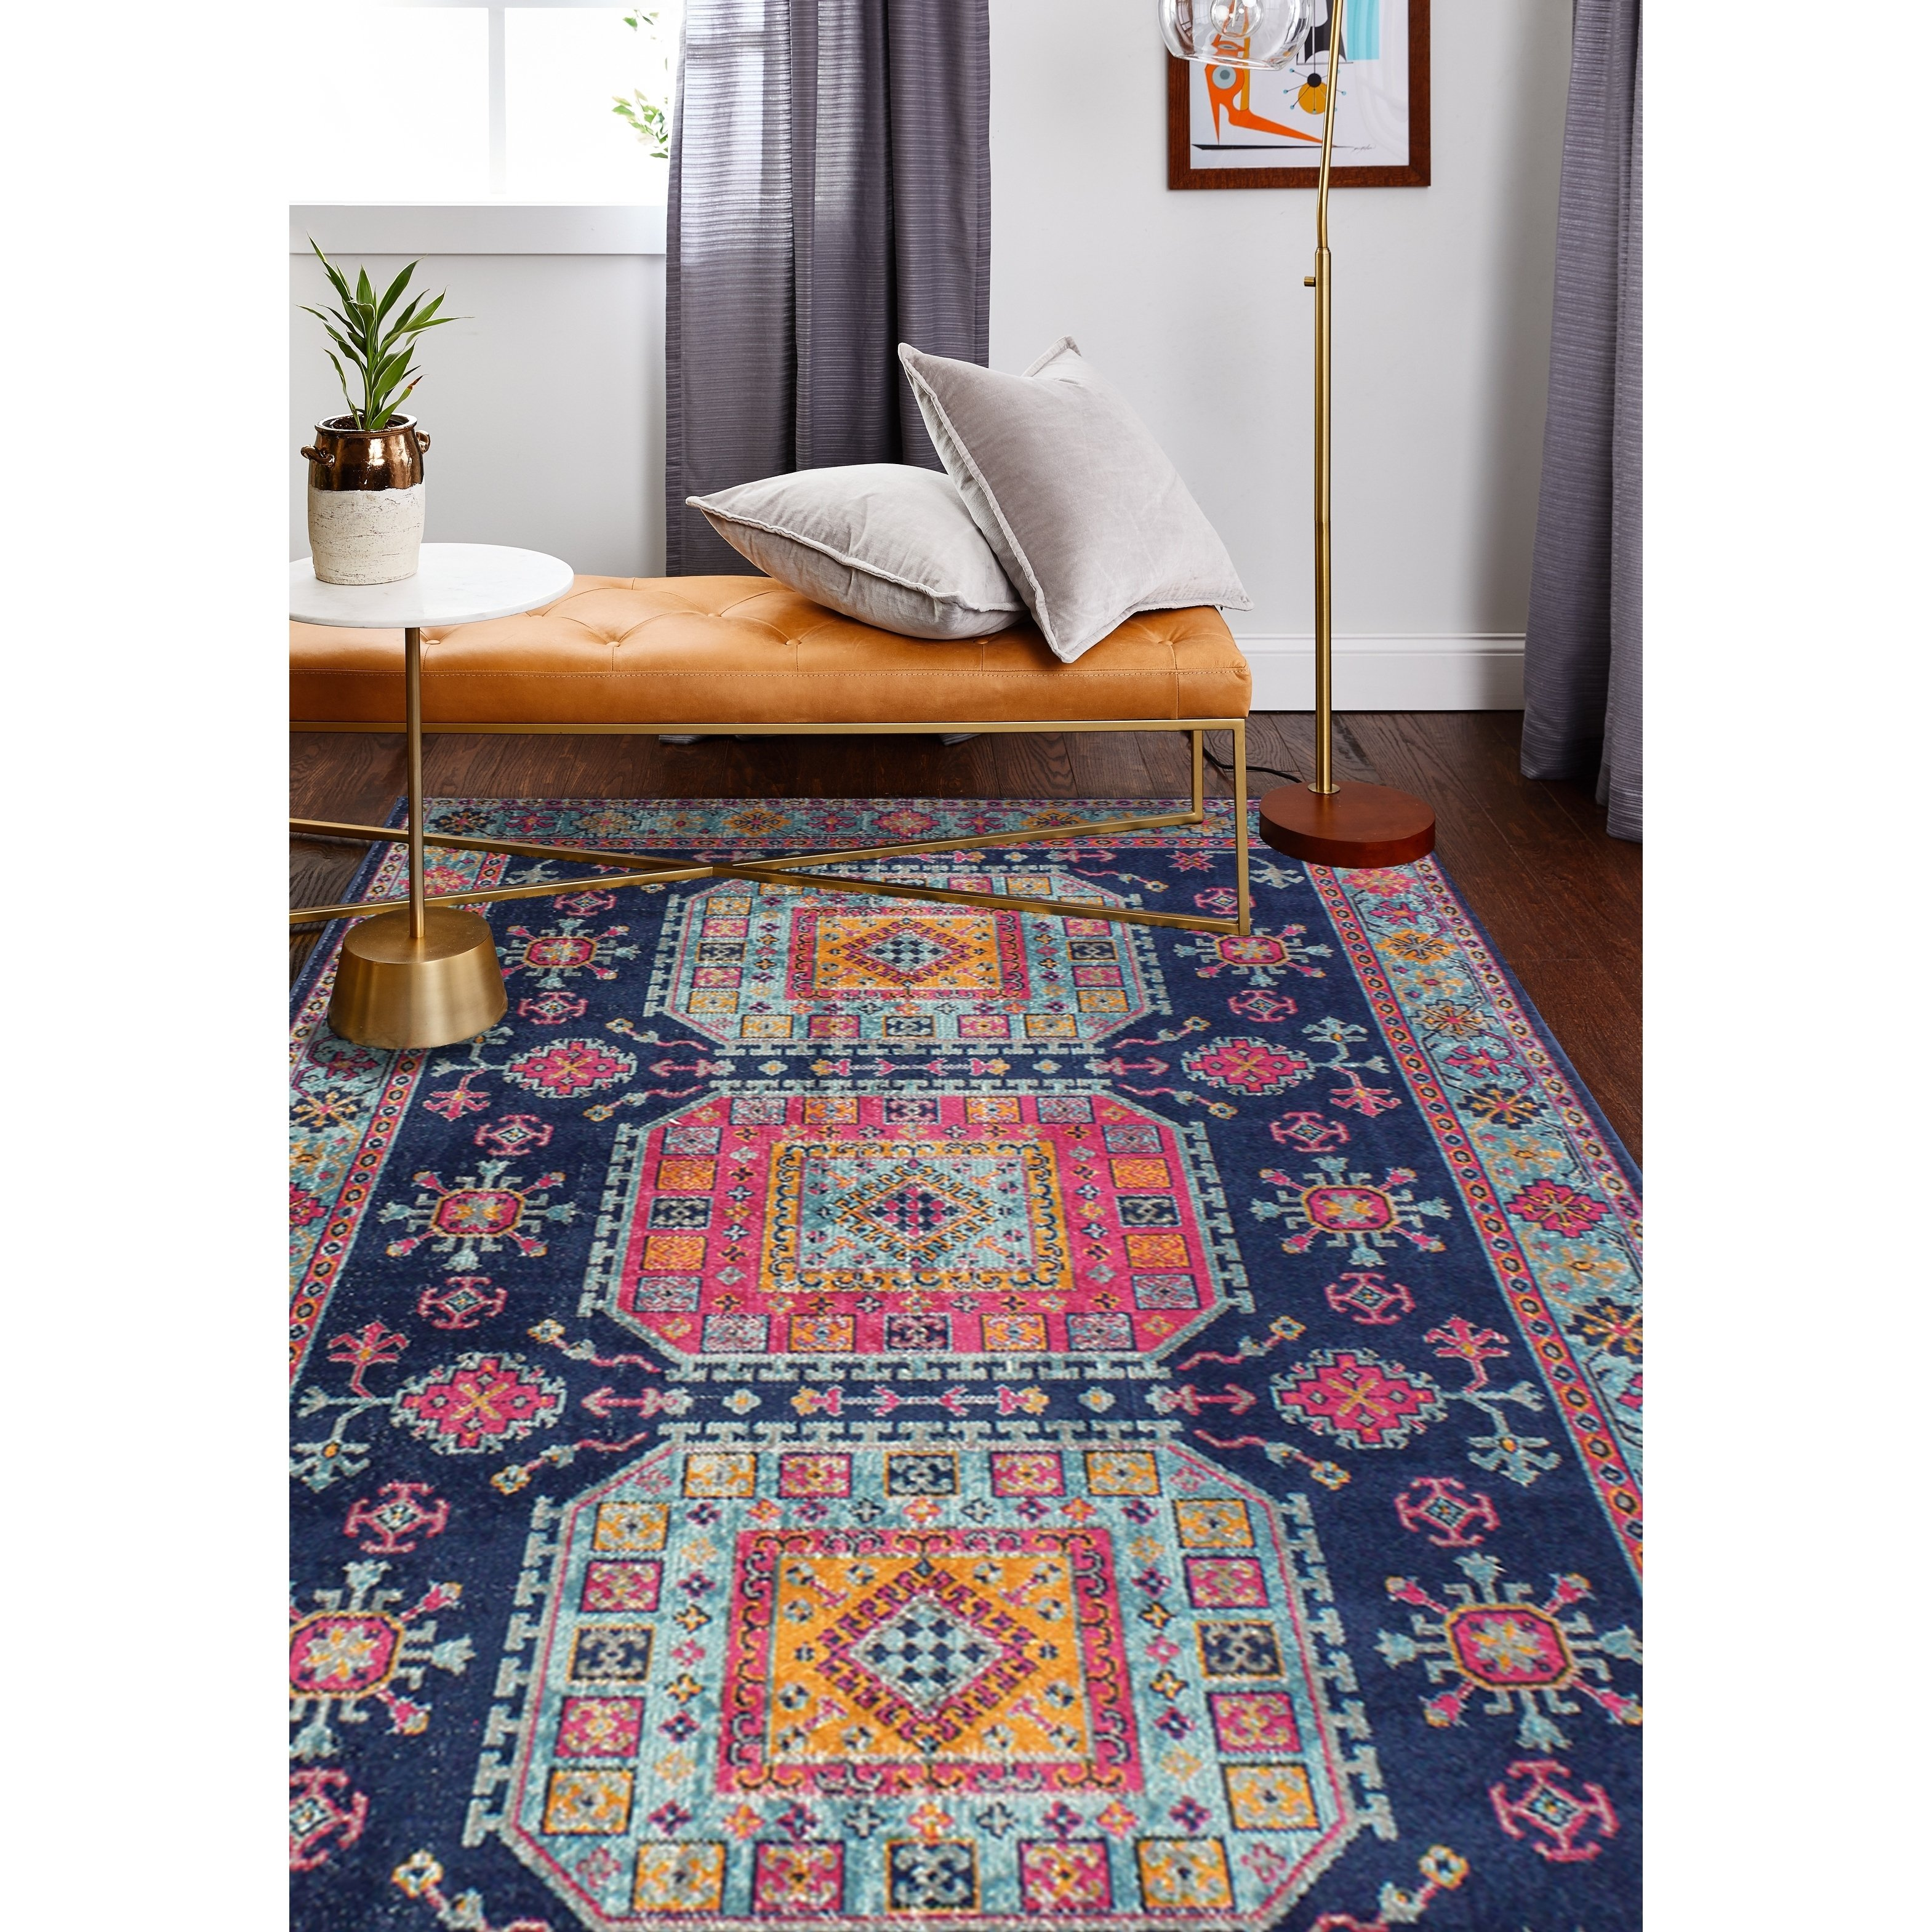 Fausto Dk Blue Transitional Area Rug 8 7 X 11 6 8 7 X 11 6 Dark Blue Polypropylene Graphic Transitional Area Rugs Rugs Colorful Rugs